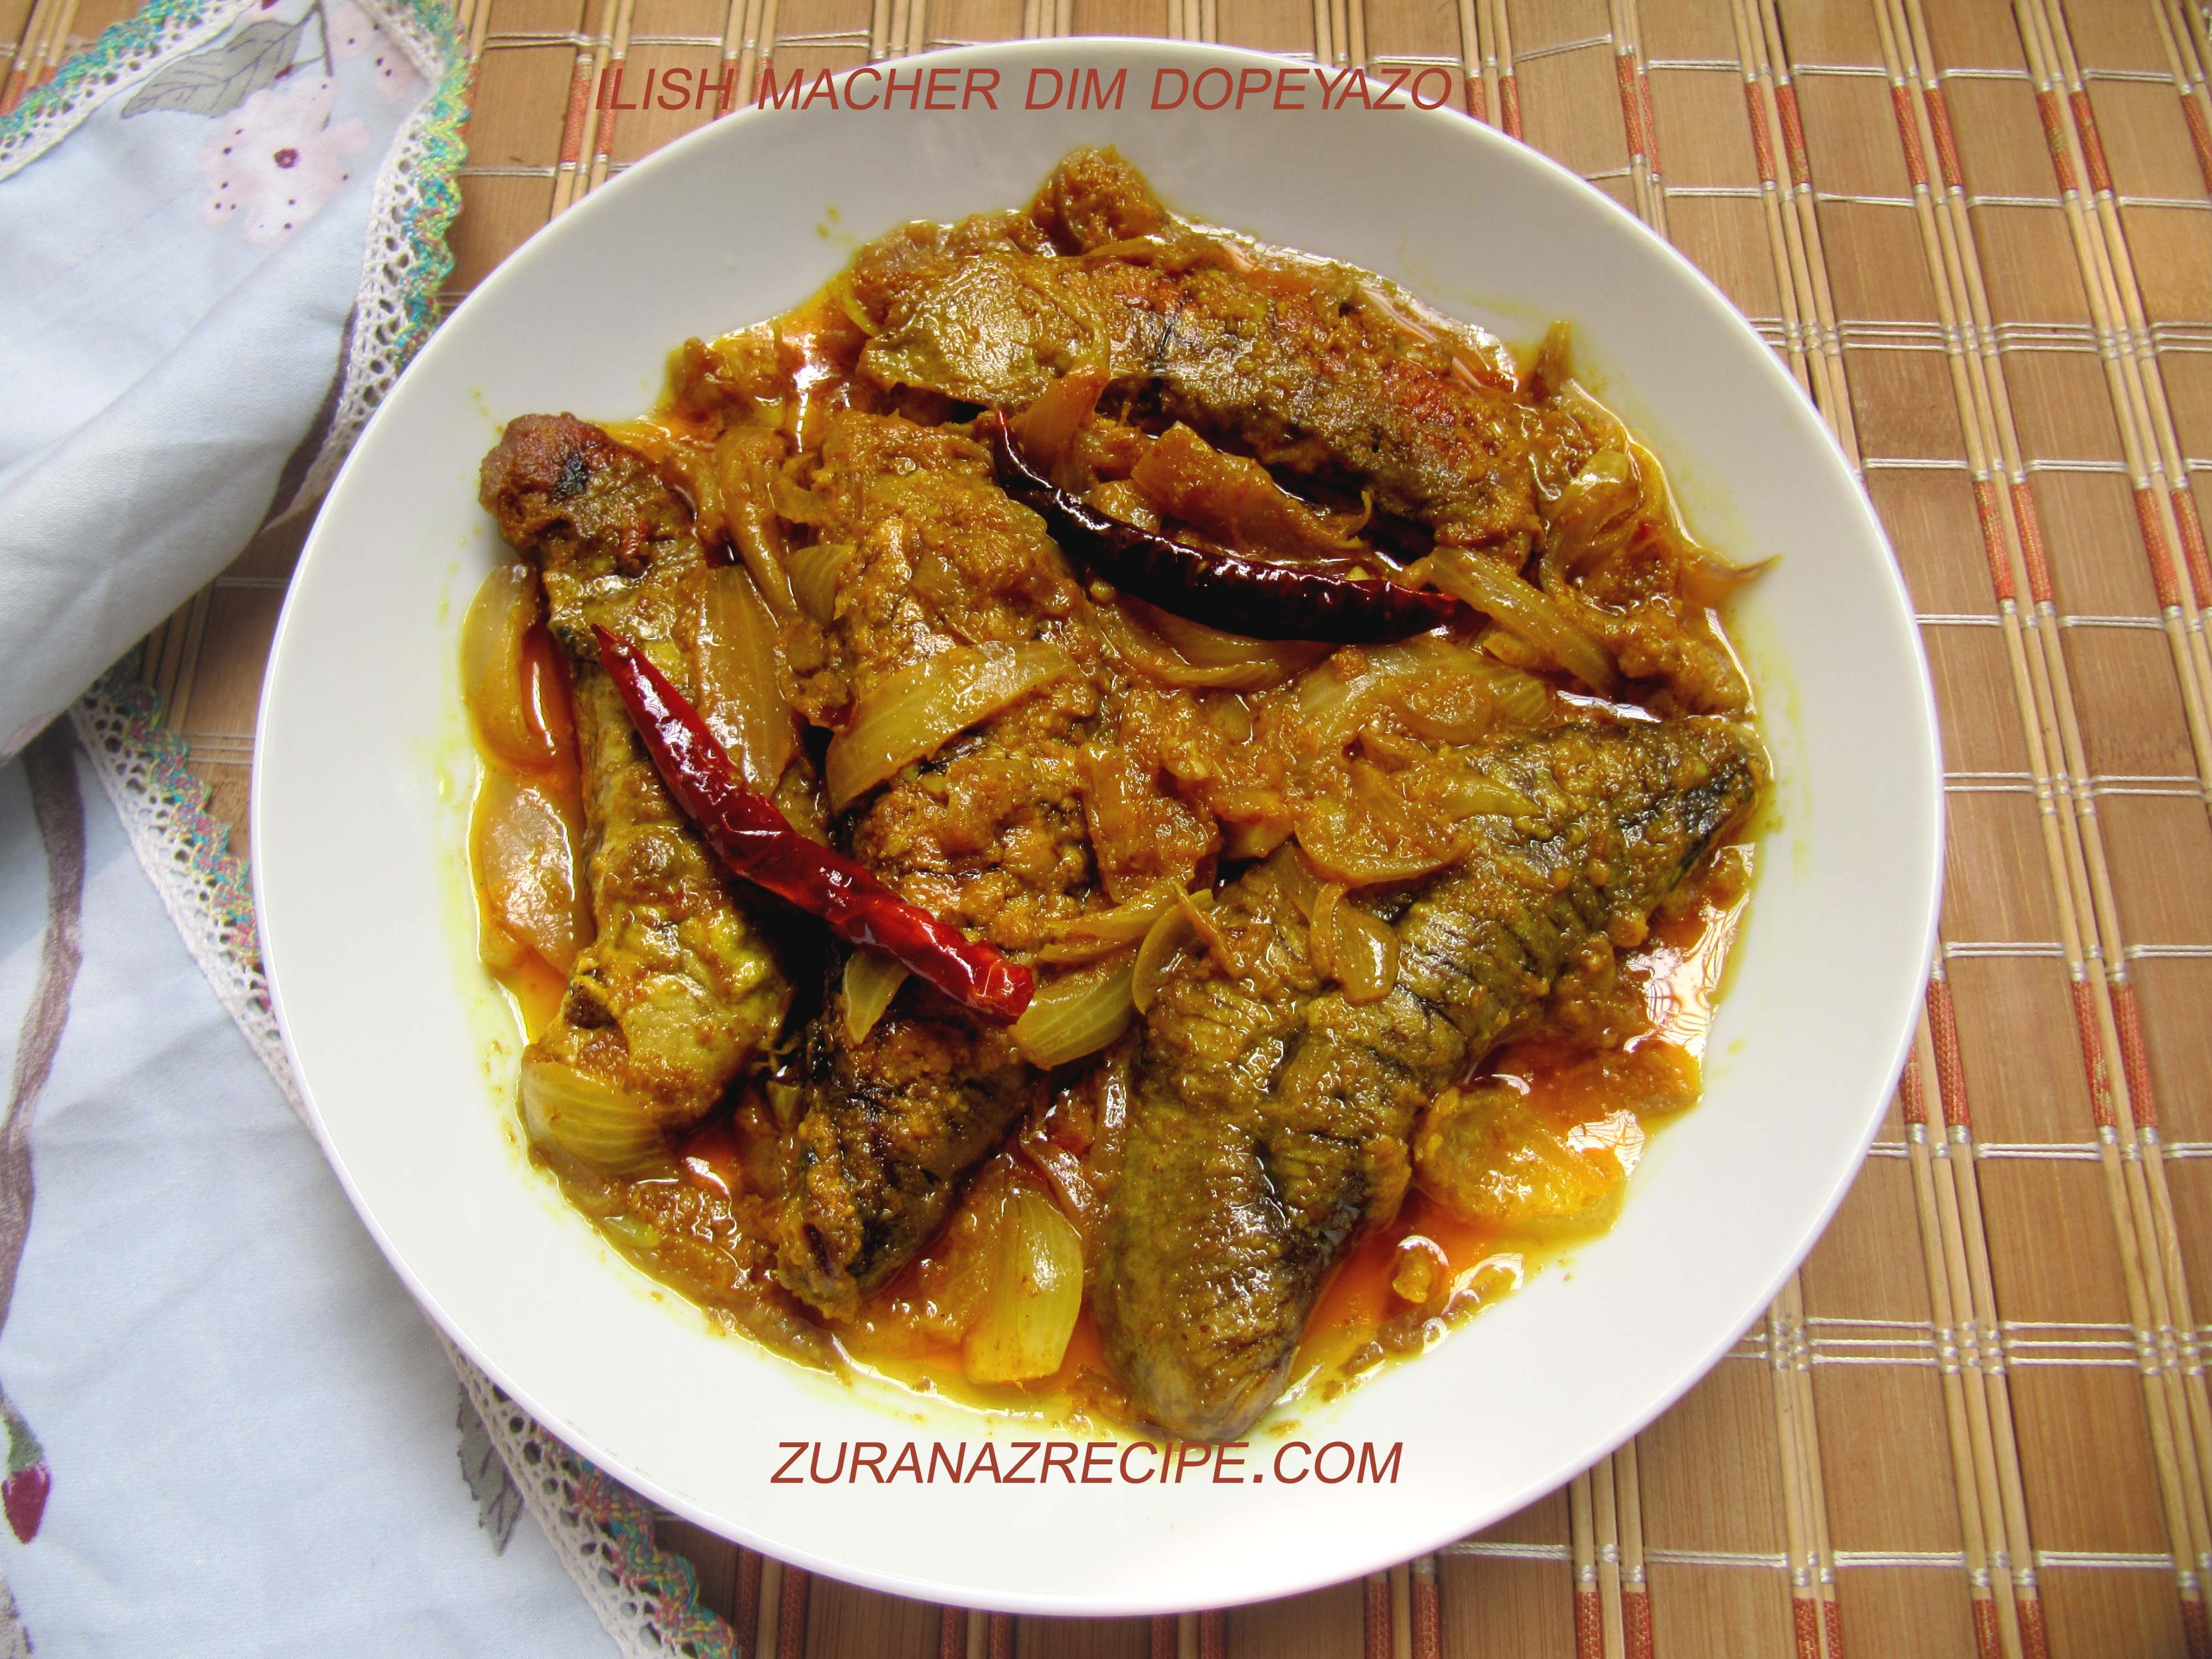 Ilish macher dim dopeyazo bangla bangladeshi bengali food ilish macher dim dopeyazo bangla bangladeshi bengali food recipes forumfinder Choice Image